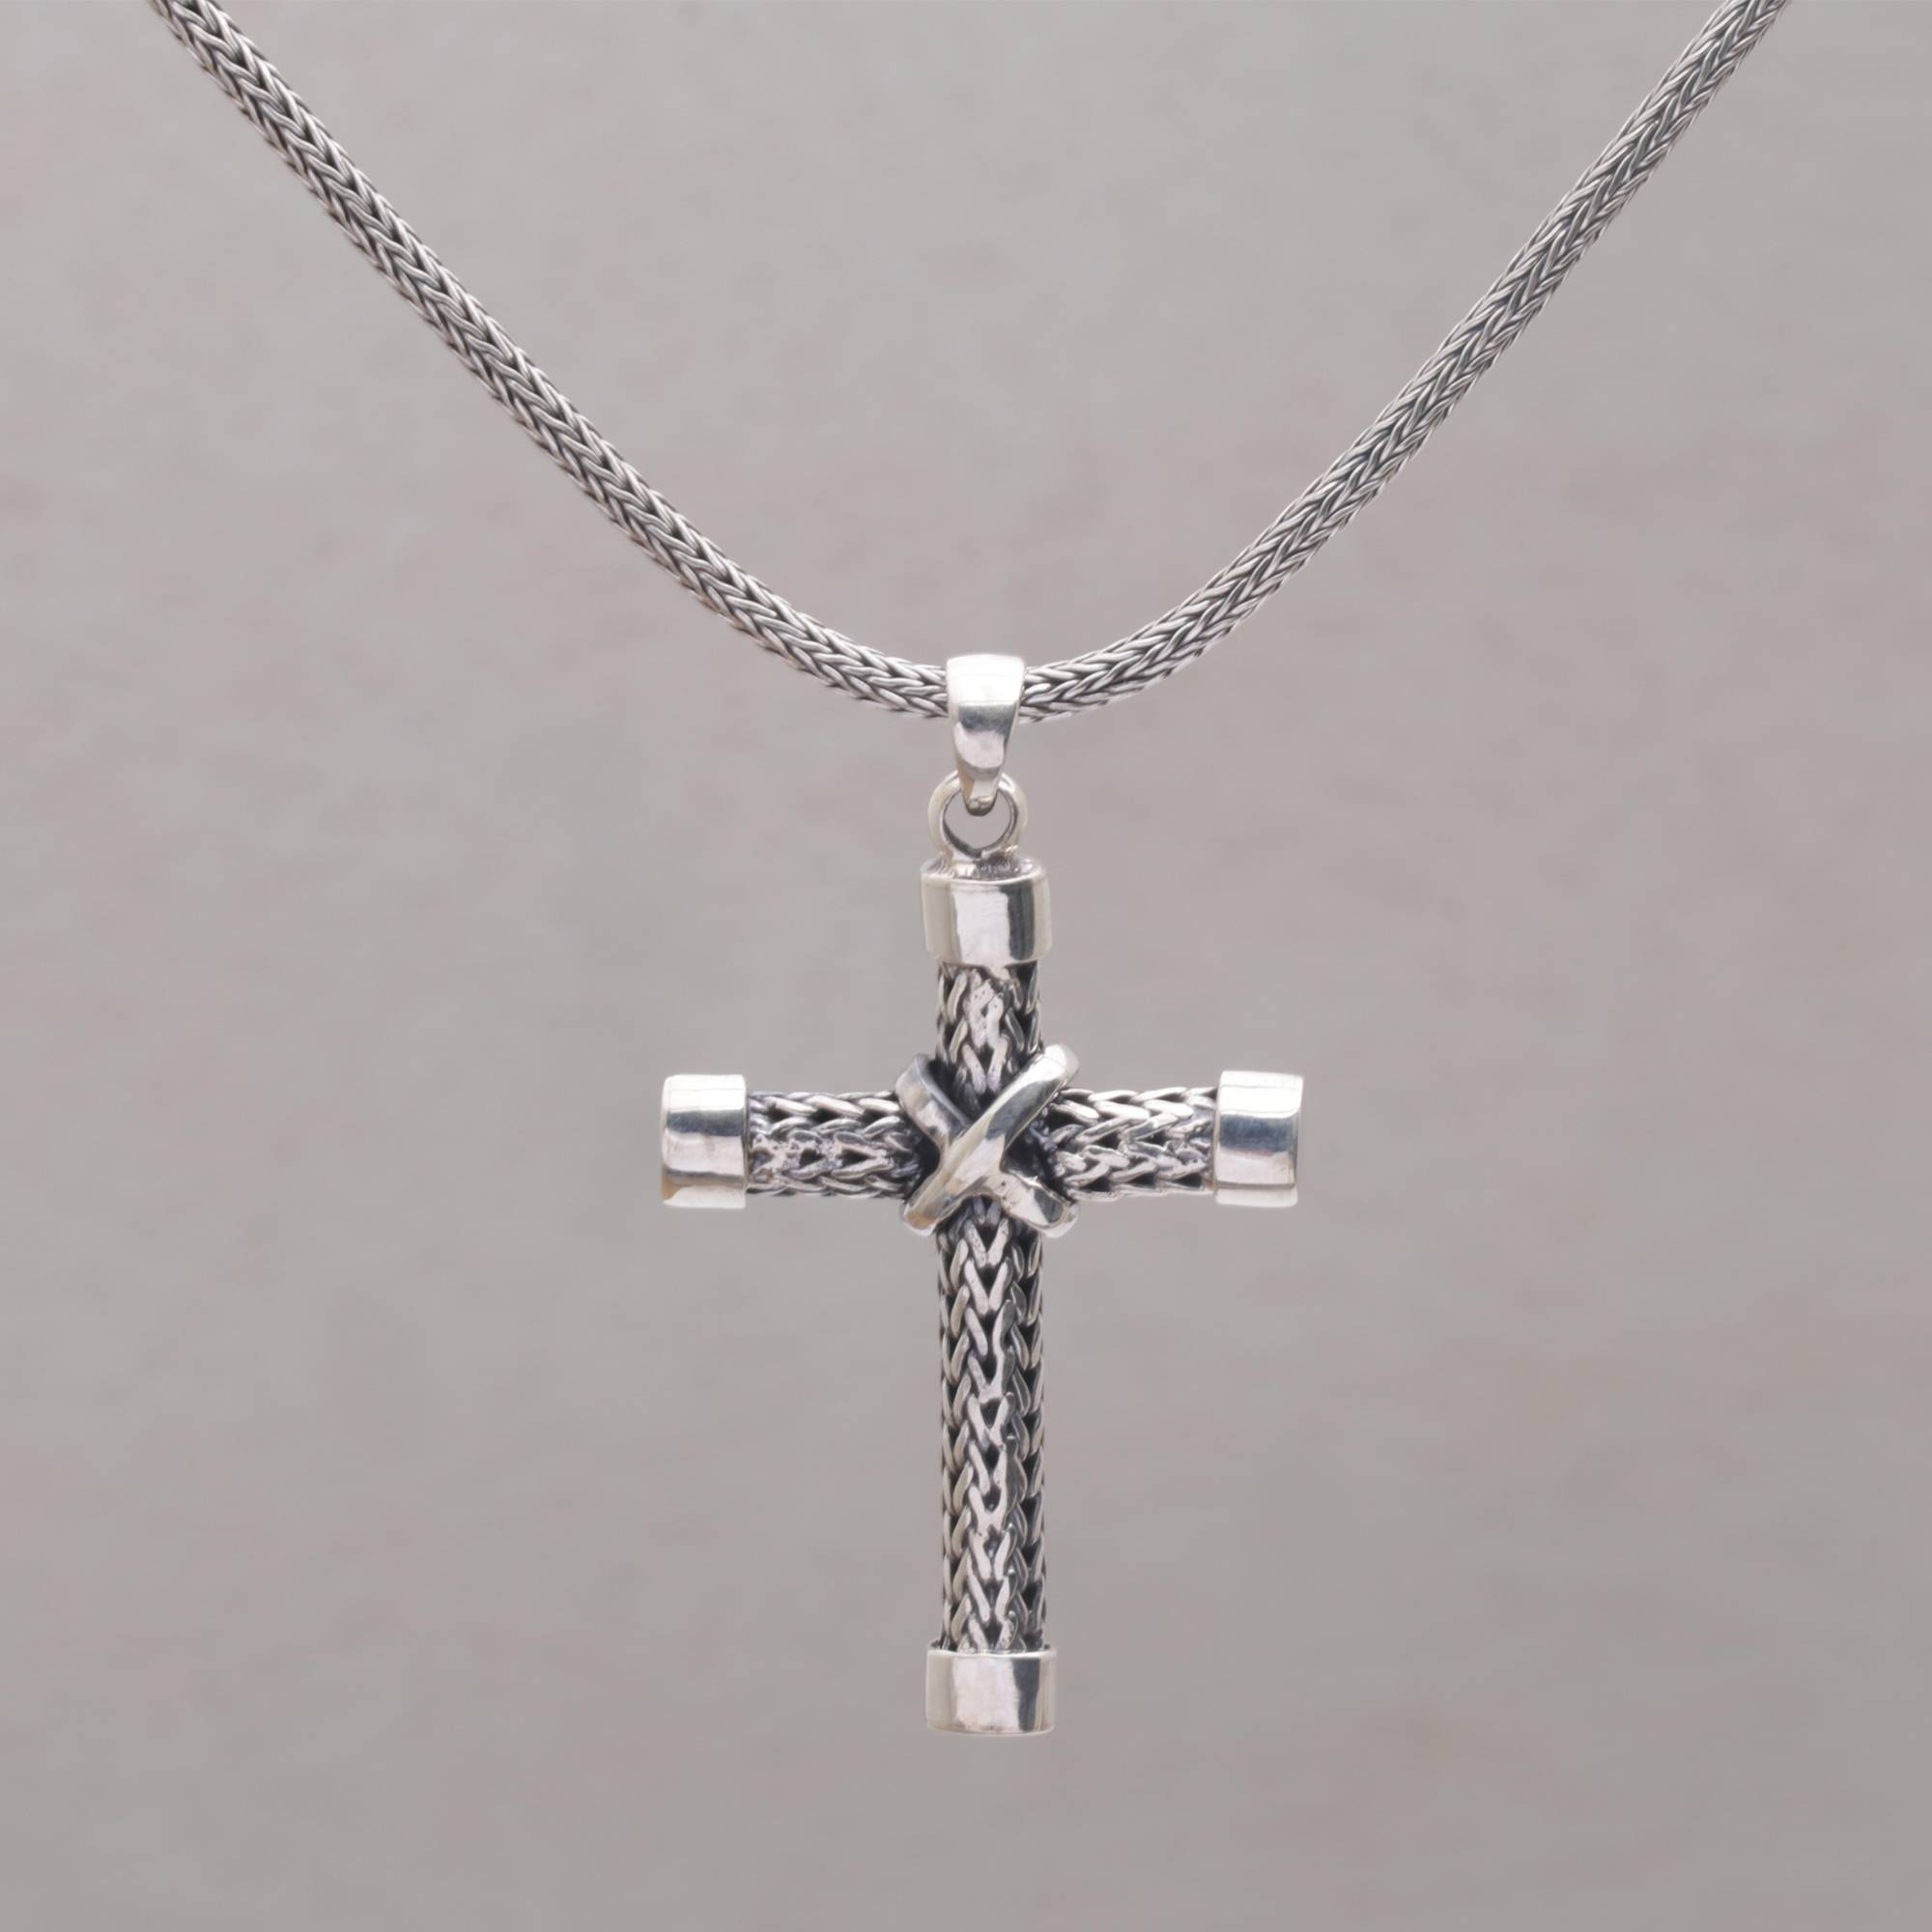 c559aecc8fc0 Sterling Silver Cross Pendant Necklace Handcrafted in Bali - Simple ...